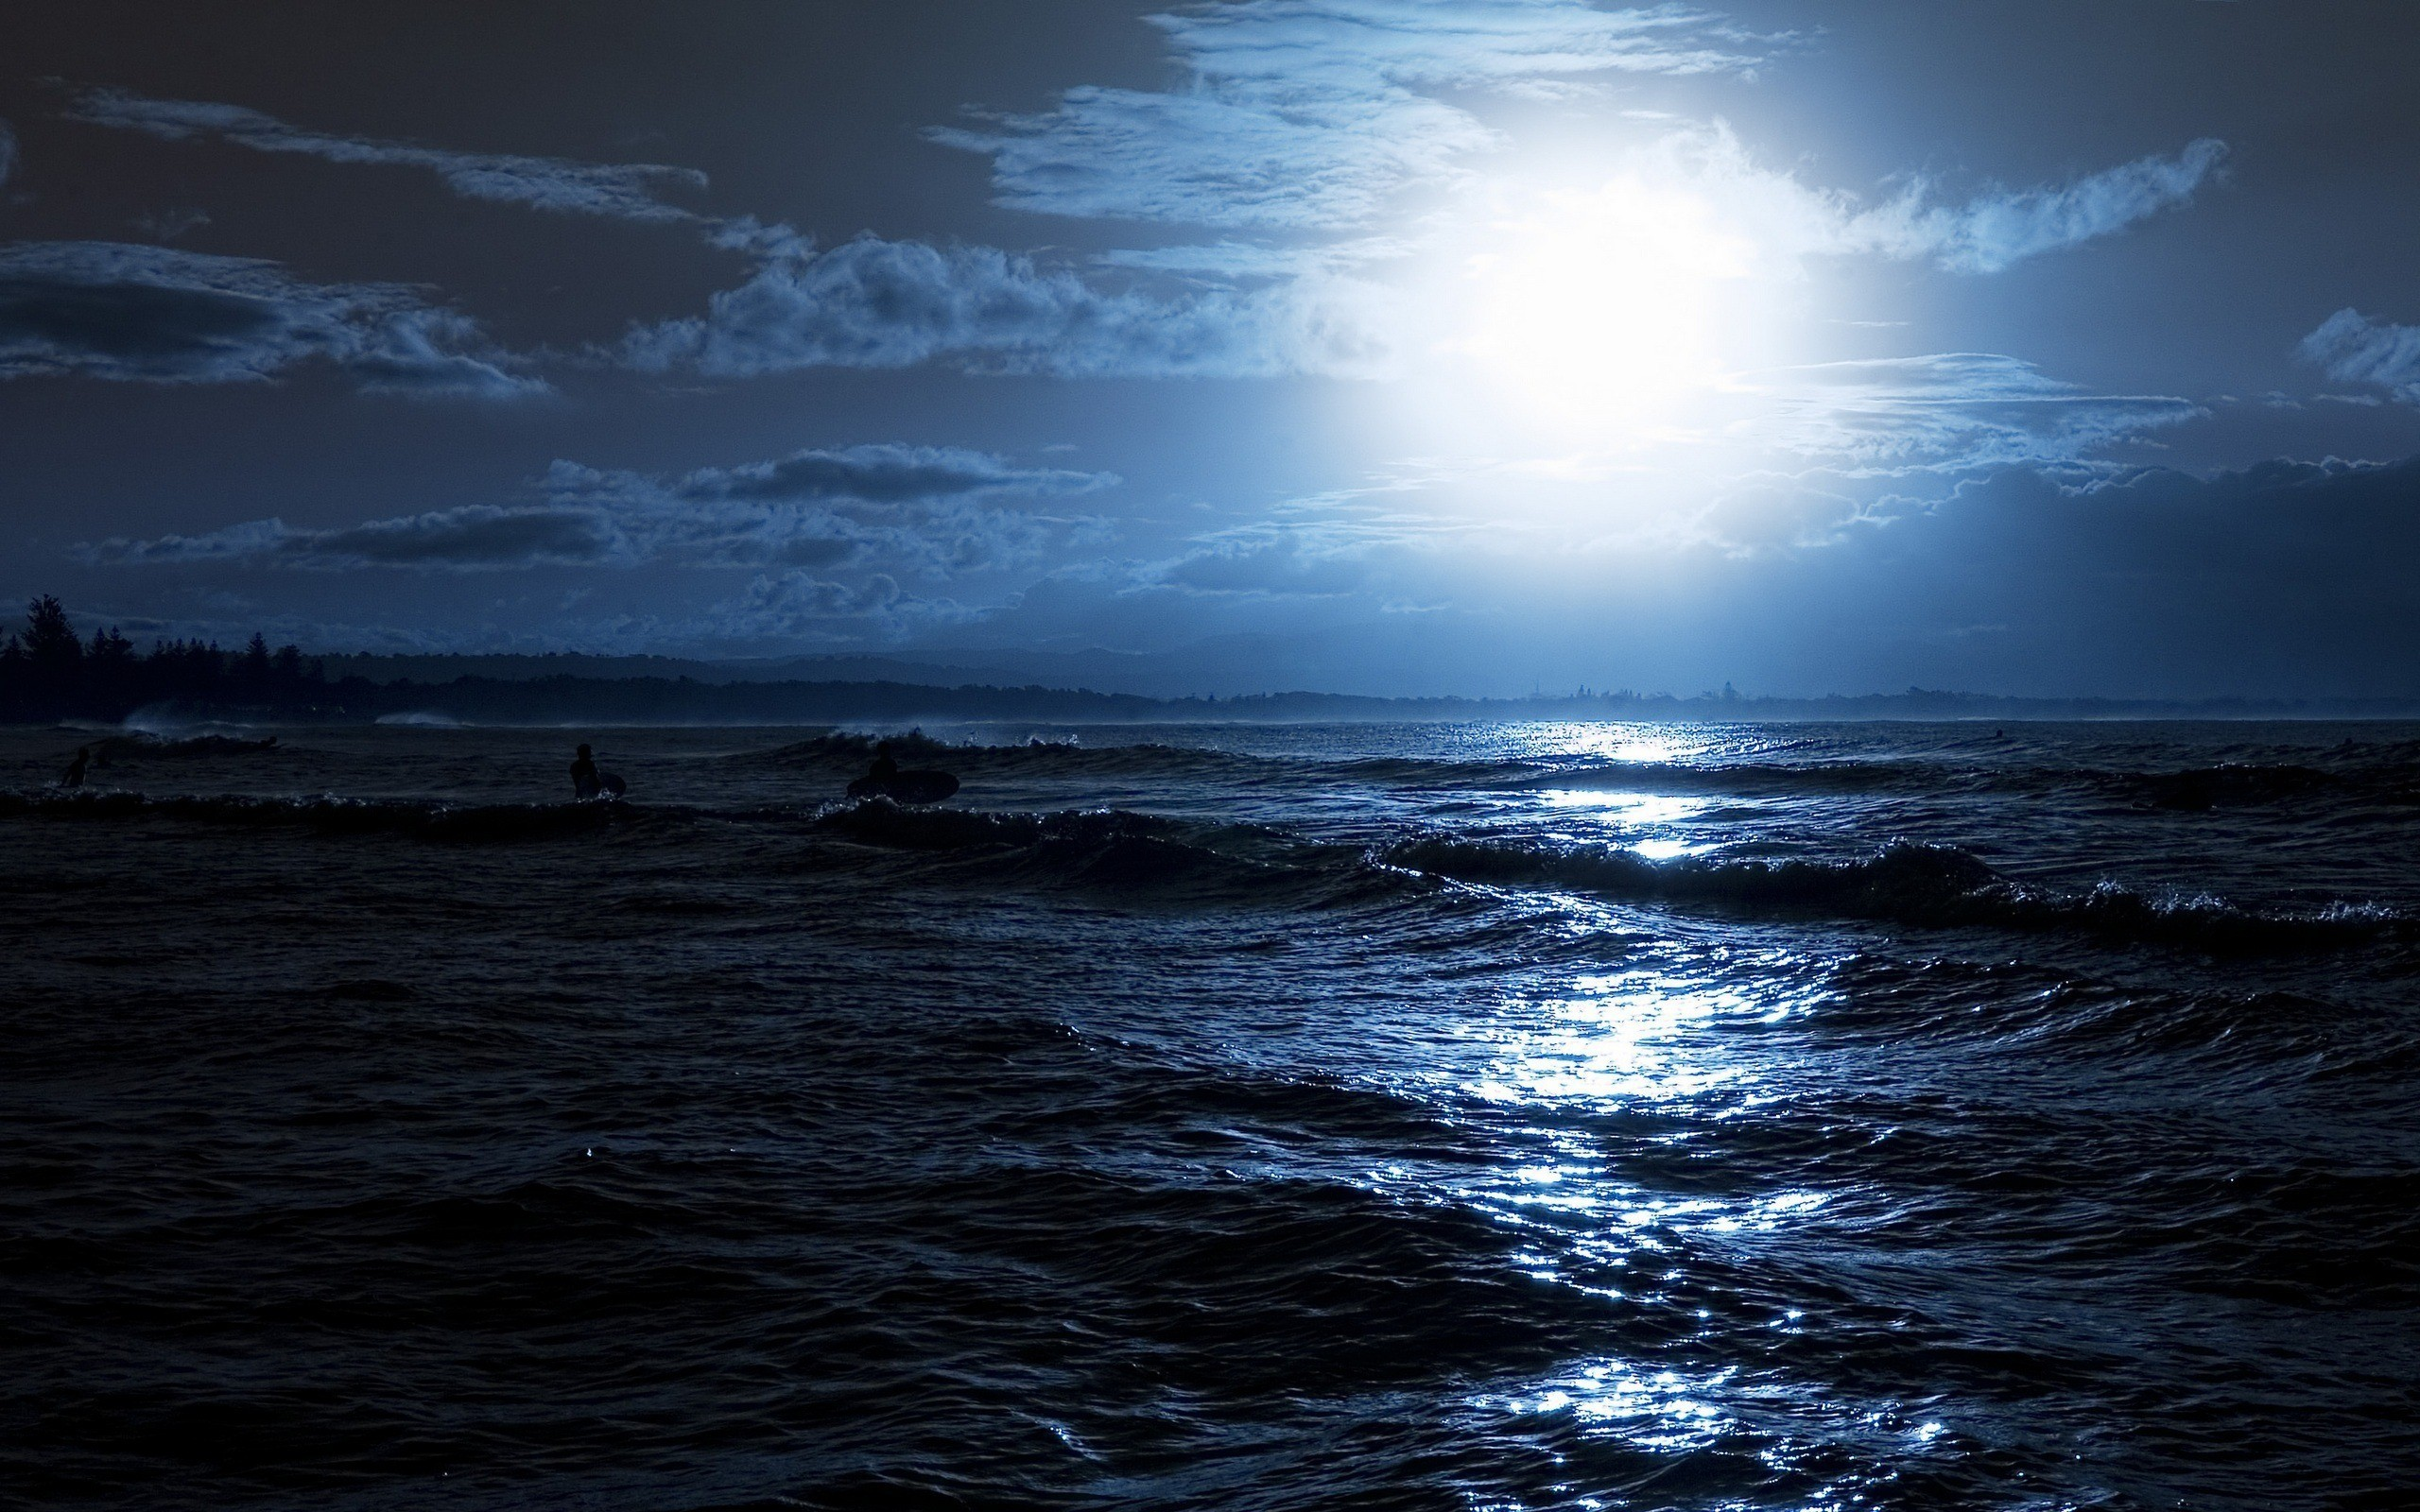 Nature___Sea_The_moon_over_the_sea_037360_